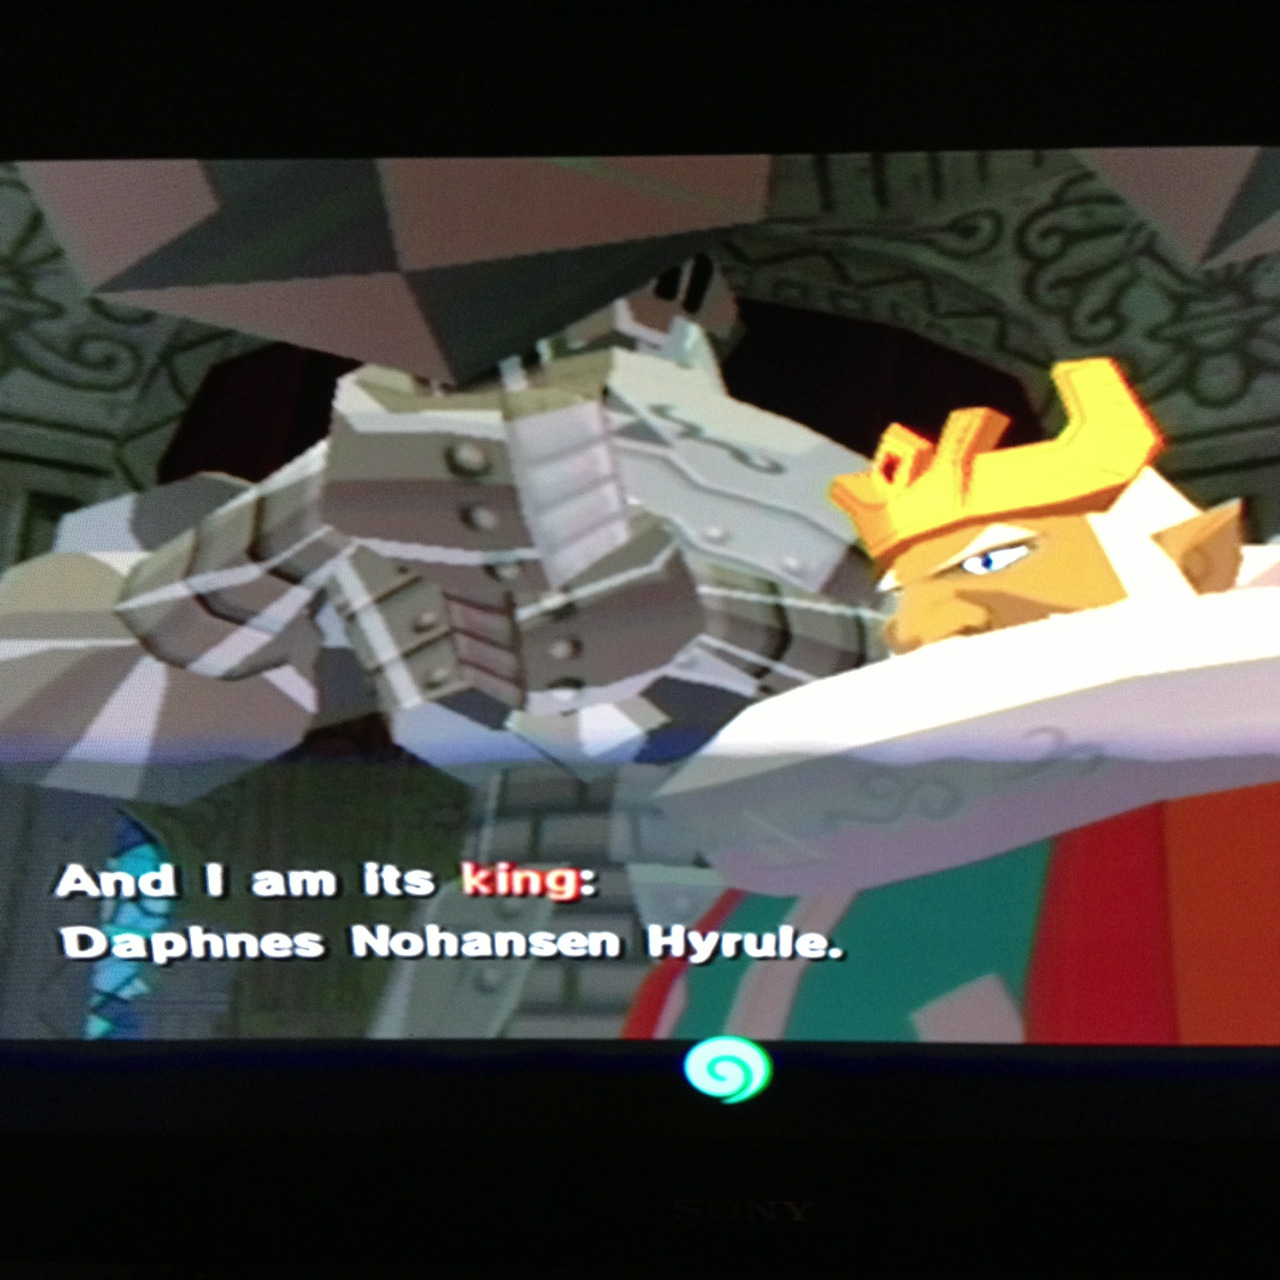 And I am its king:  Daphnes Nohansen Hyrule